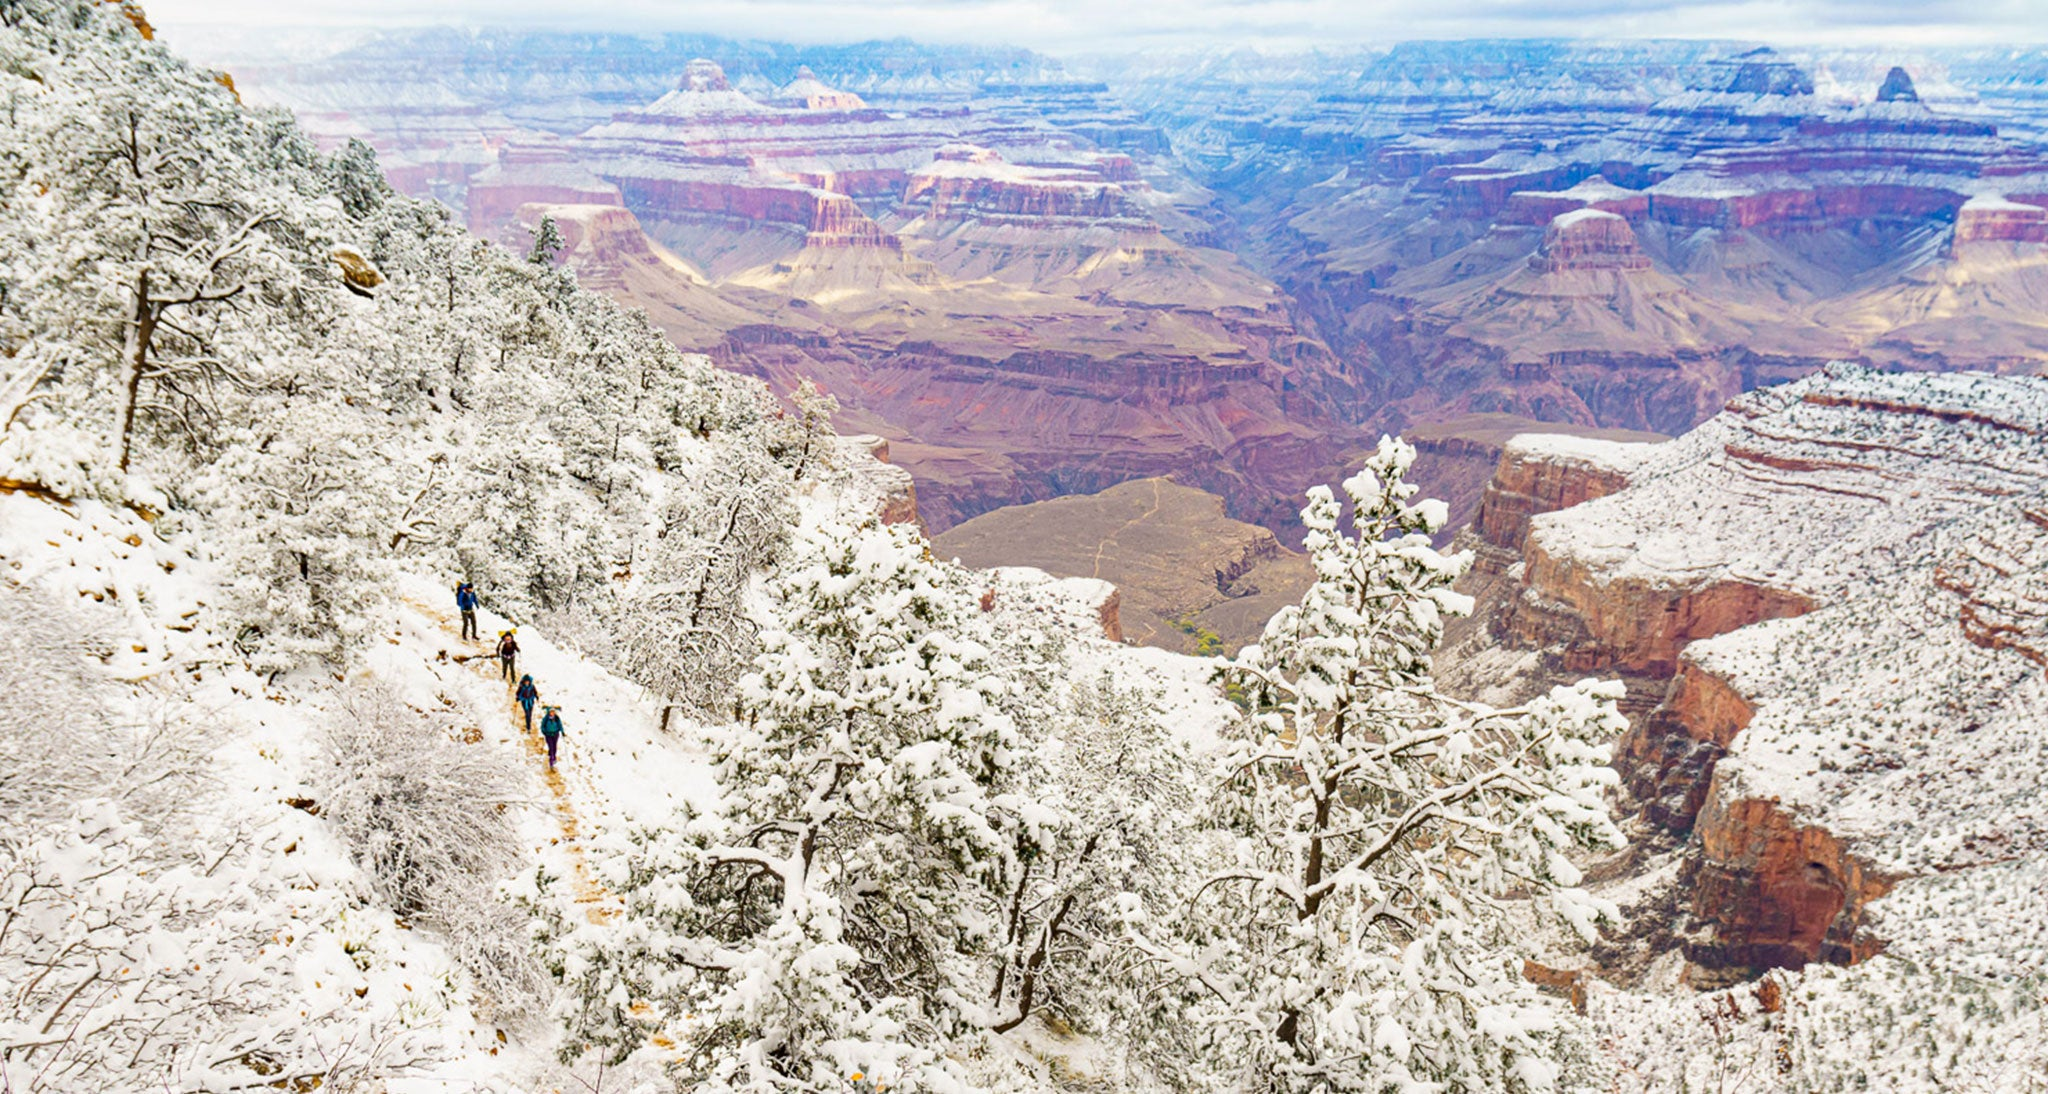 """Four backpackers descend Bright Angel Trail in Grand Canyon National Park just below the rim.  An early winter Pacific cold front brought 5-6"""" of new snow and morning temperatures in the teens at the 7000' rim.  The snow ending near the Redwall formation at around the 4500' level is quite common.  Snow can pile up several feet deep on the 8000' north rim and hardly fall at all at the river level.  In a stable atmosphere as with this system the rim to river temperature difference this day was only about 20 degrees but warm enough to descend far below the snow line and freezing temperatures."""